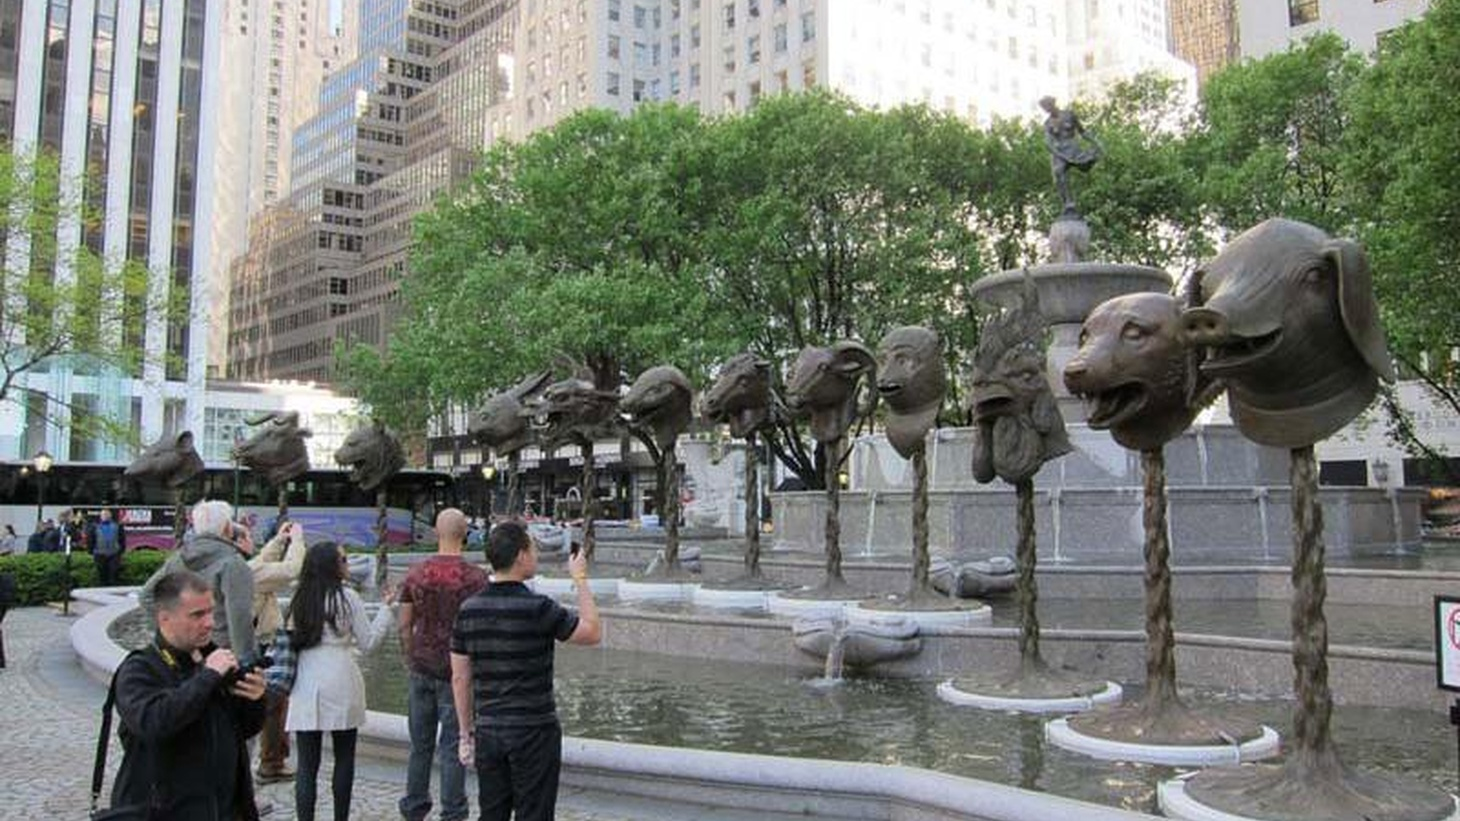 In the last decade, the name of Chinese sculptor Ai Weiwei has become known not only to the art connoisseurs but to a wide public as well...